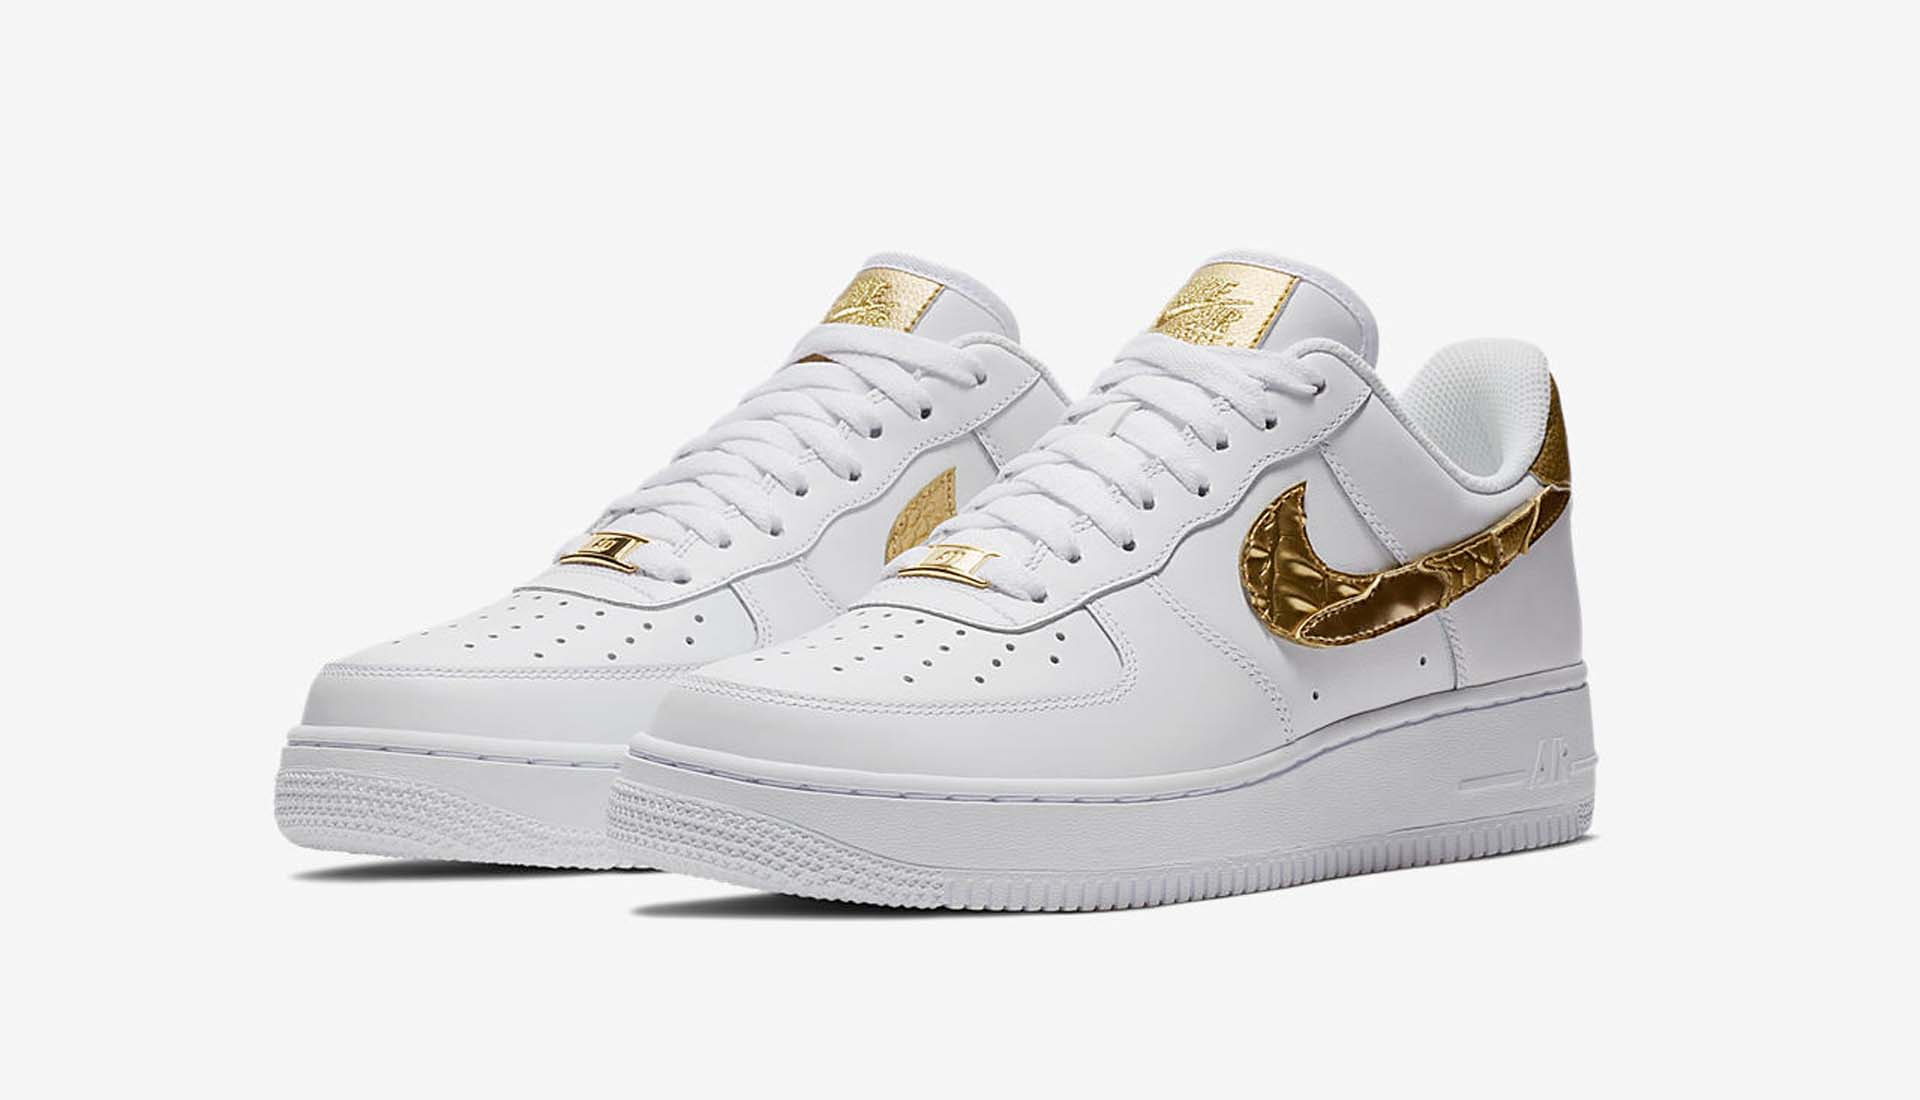 Los Angeles 2cee8 41d12 Nike dévoile la Air Force 1 CR7 Golden Patchwork, après la ...